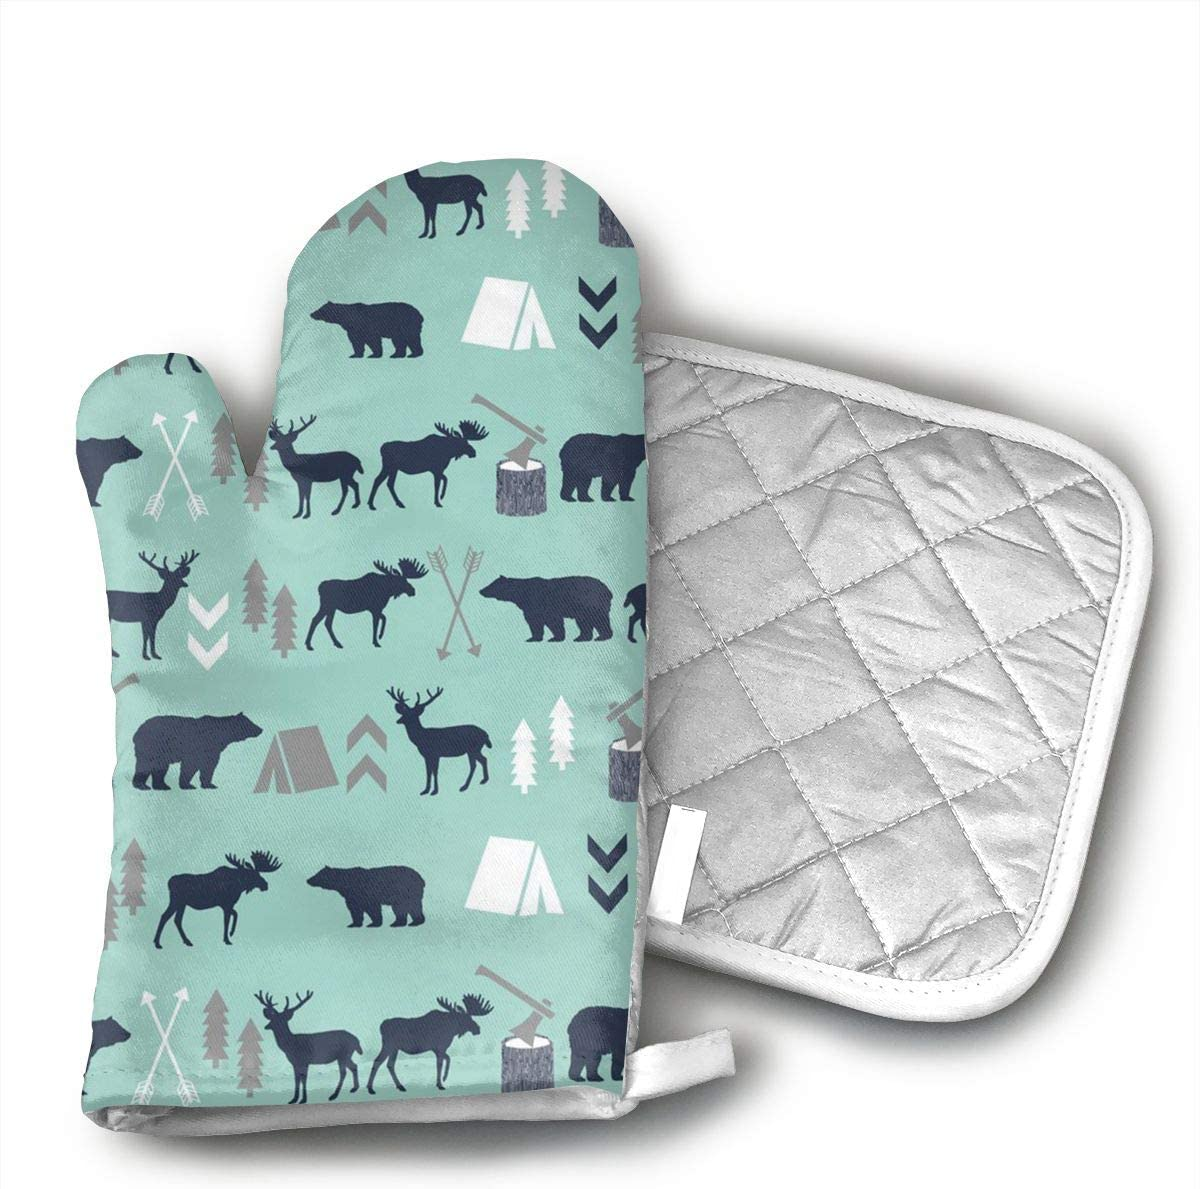 Mint Grey Navy Blue Bear Moose Forest Arrow Oven Mitts, Non-Slip Silicone Oven Mitts, Extra Long Kitchen Mitts, Heat Resistant to 572¡ãF Kitchen Oven Gloves